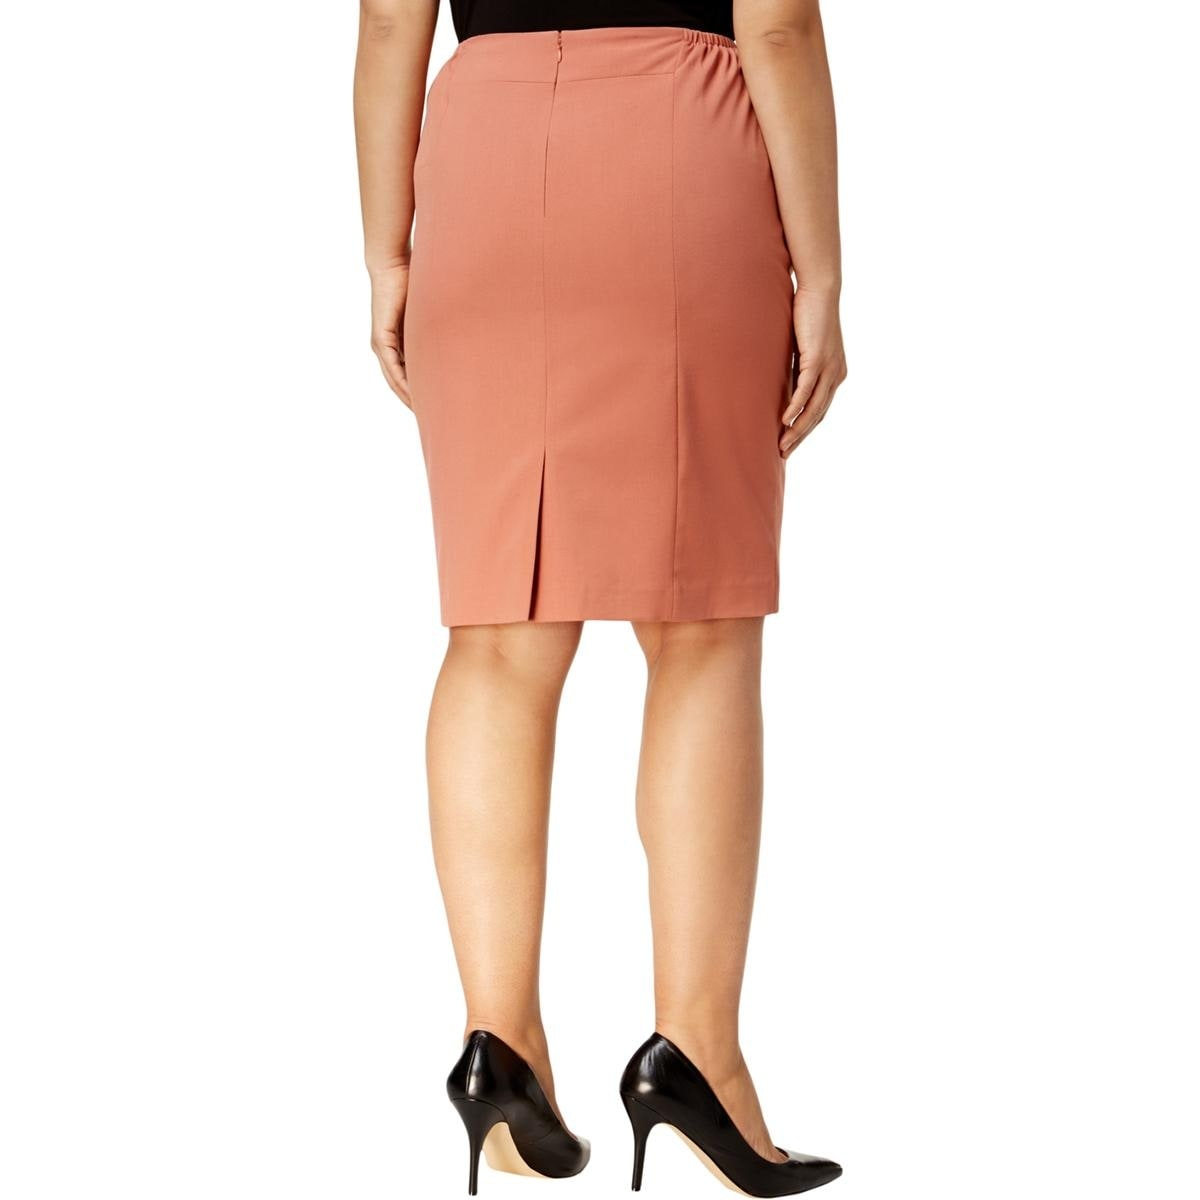 c59fbd8e90f Shop Nine West Womens Plus Pencil Skirt Knee-Length Wear To Work - Free  Shipping On Orders Over  45 - Overstock.com - 26437591